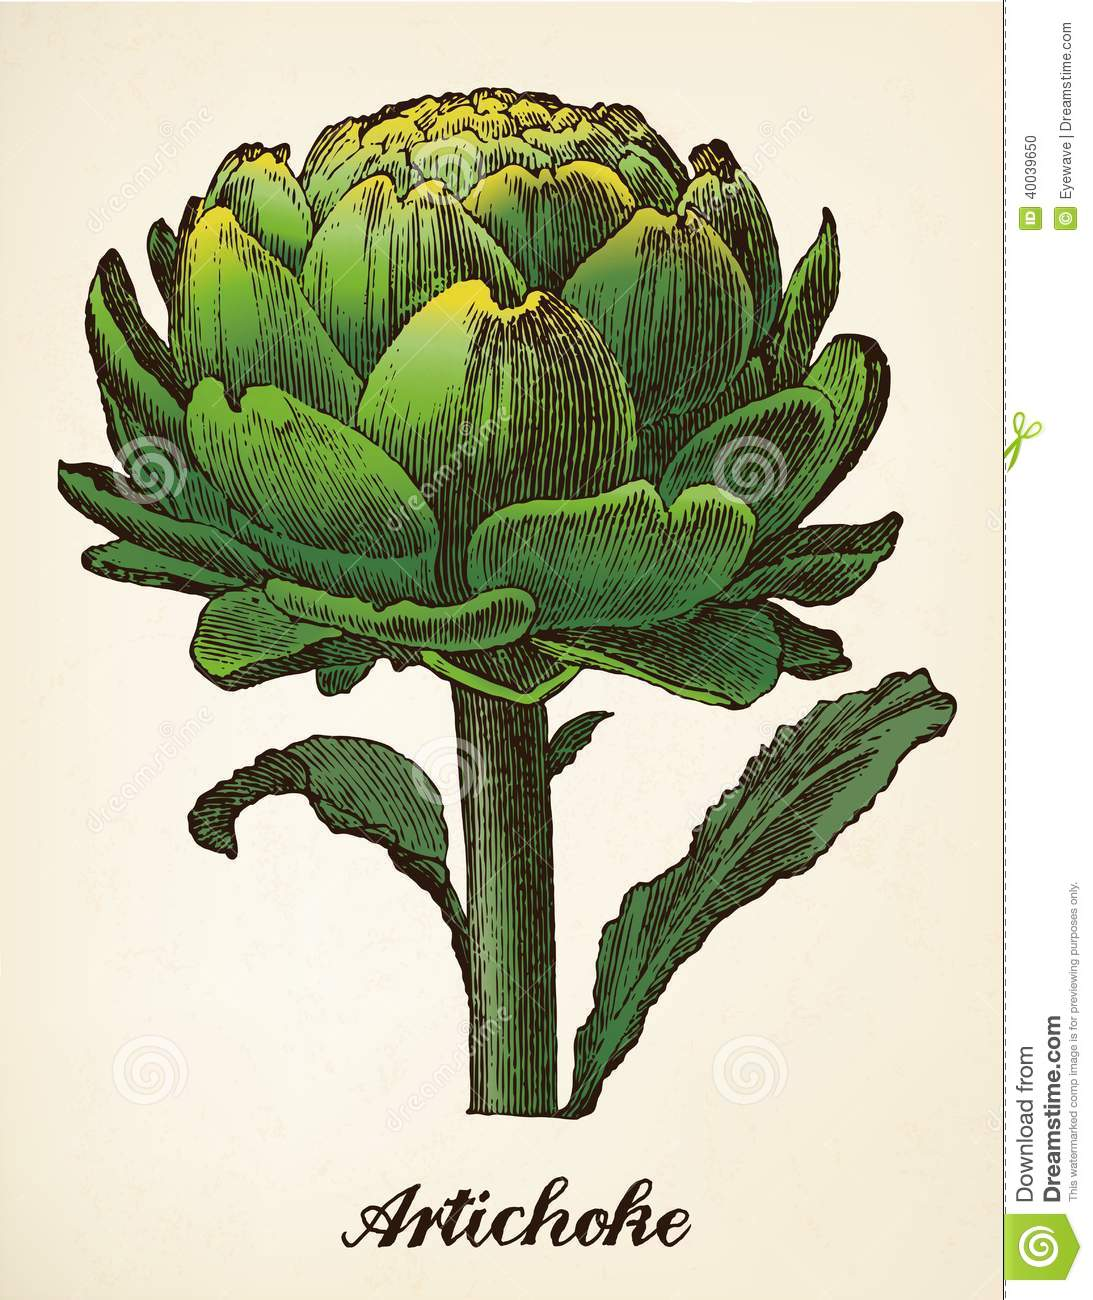 Classic Retro Illustration: Artichoke Vintage Illustration Vector Stock Vector